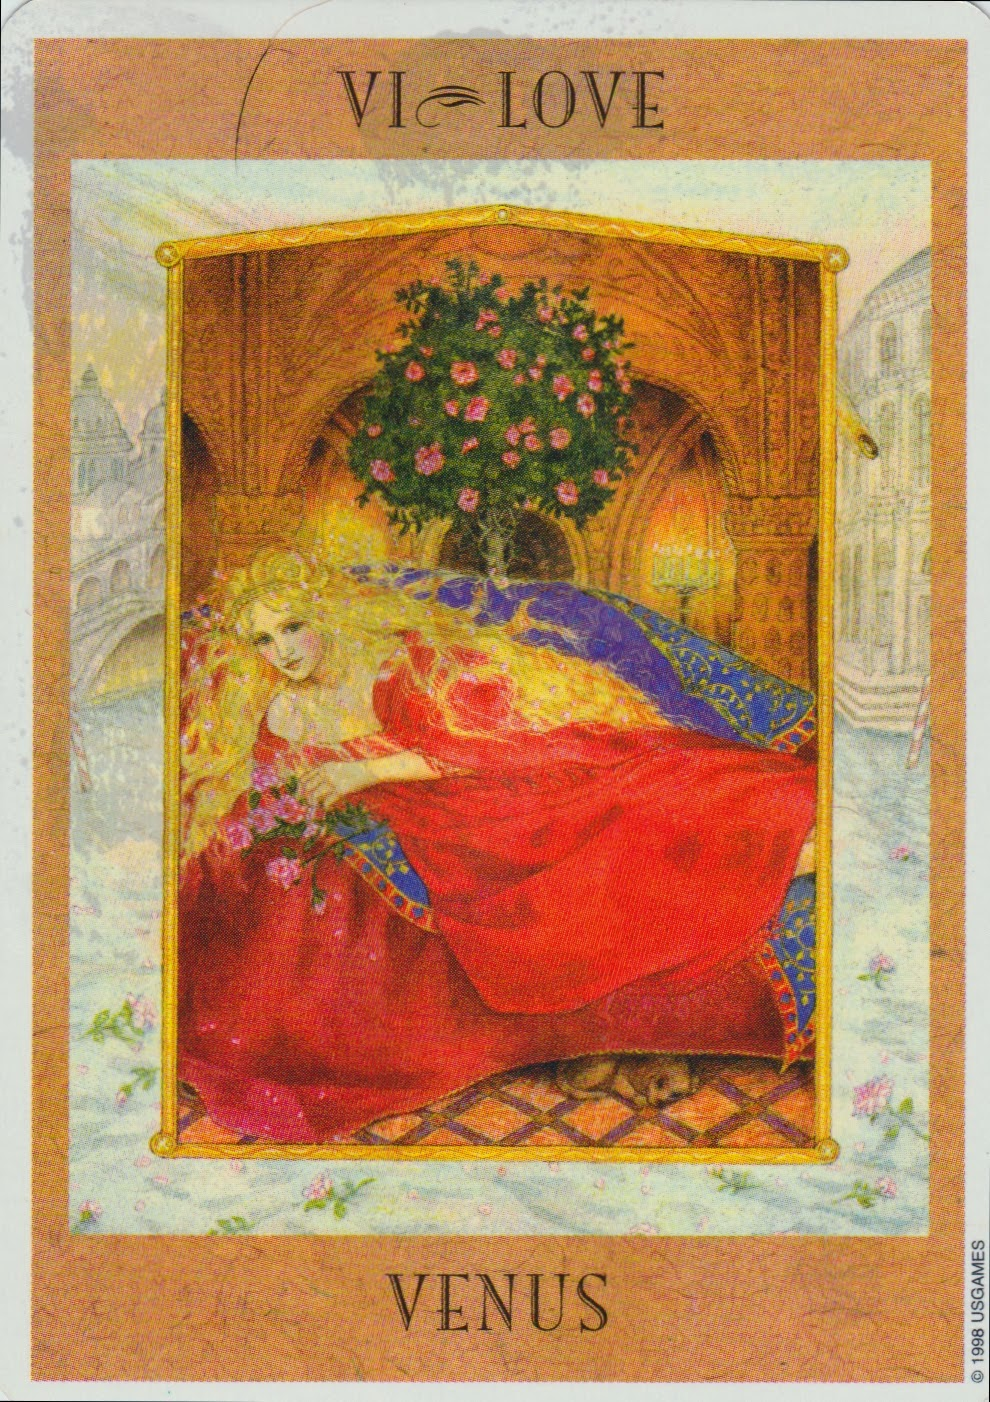 Lady Oracle Tarot: Venus In Cancer, July 18, 2014